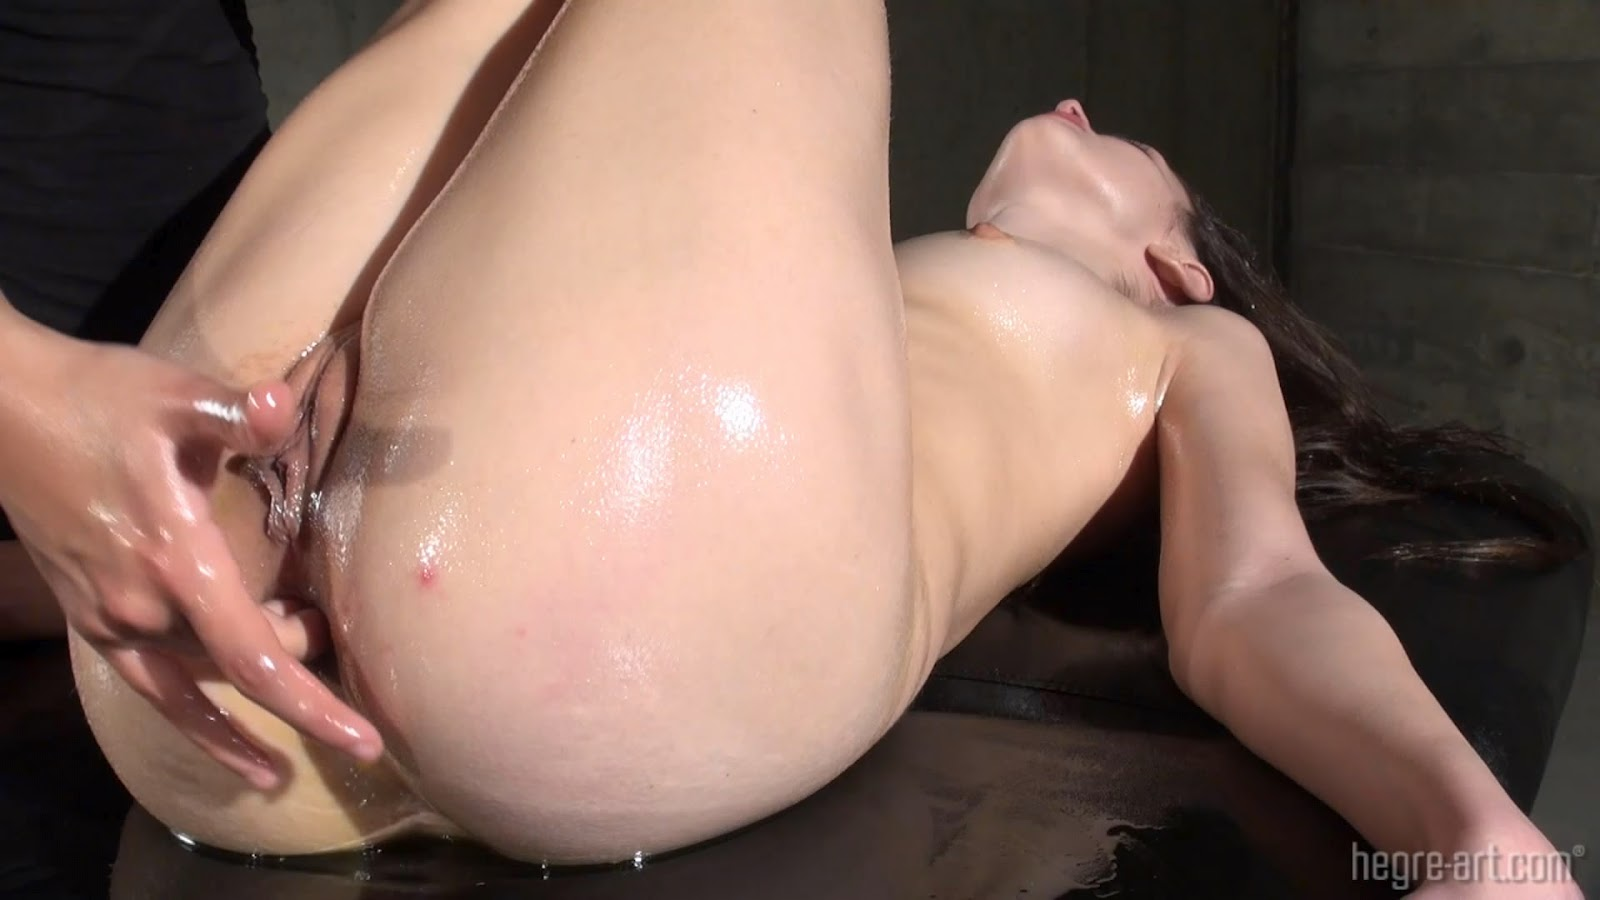 Hegre art orgasmic oily anal massage